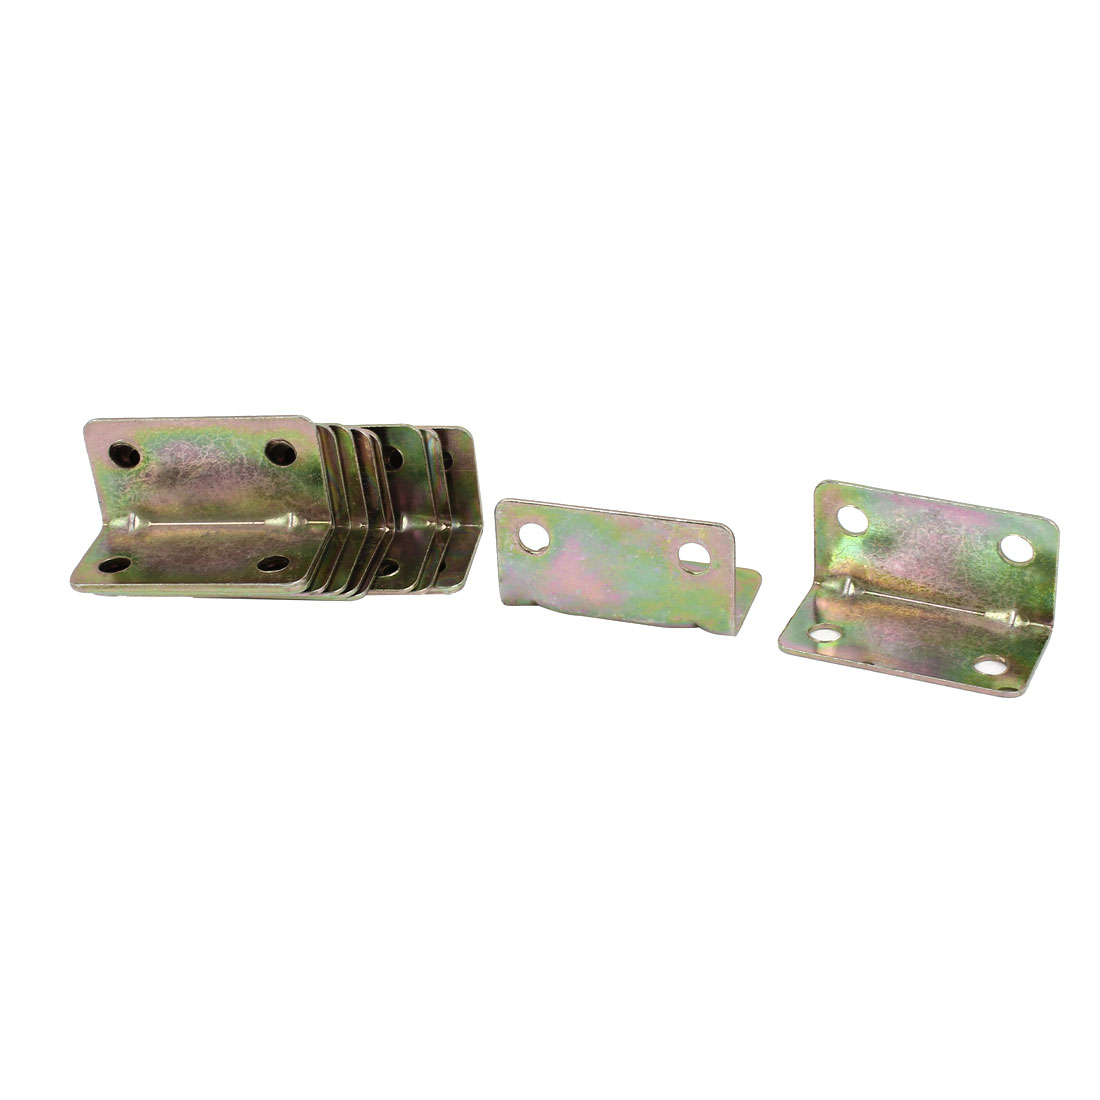 Chair Door 20mm x 20mm 90 Degree Corner Angle Brackets Bronze Tone 15 Pcs